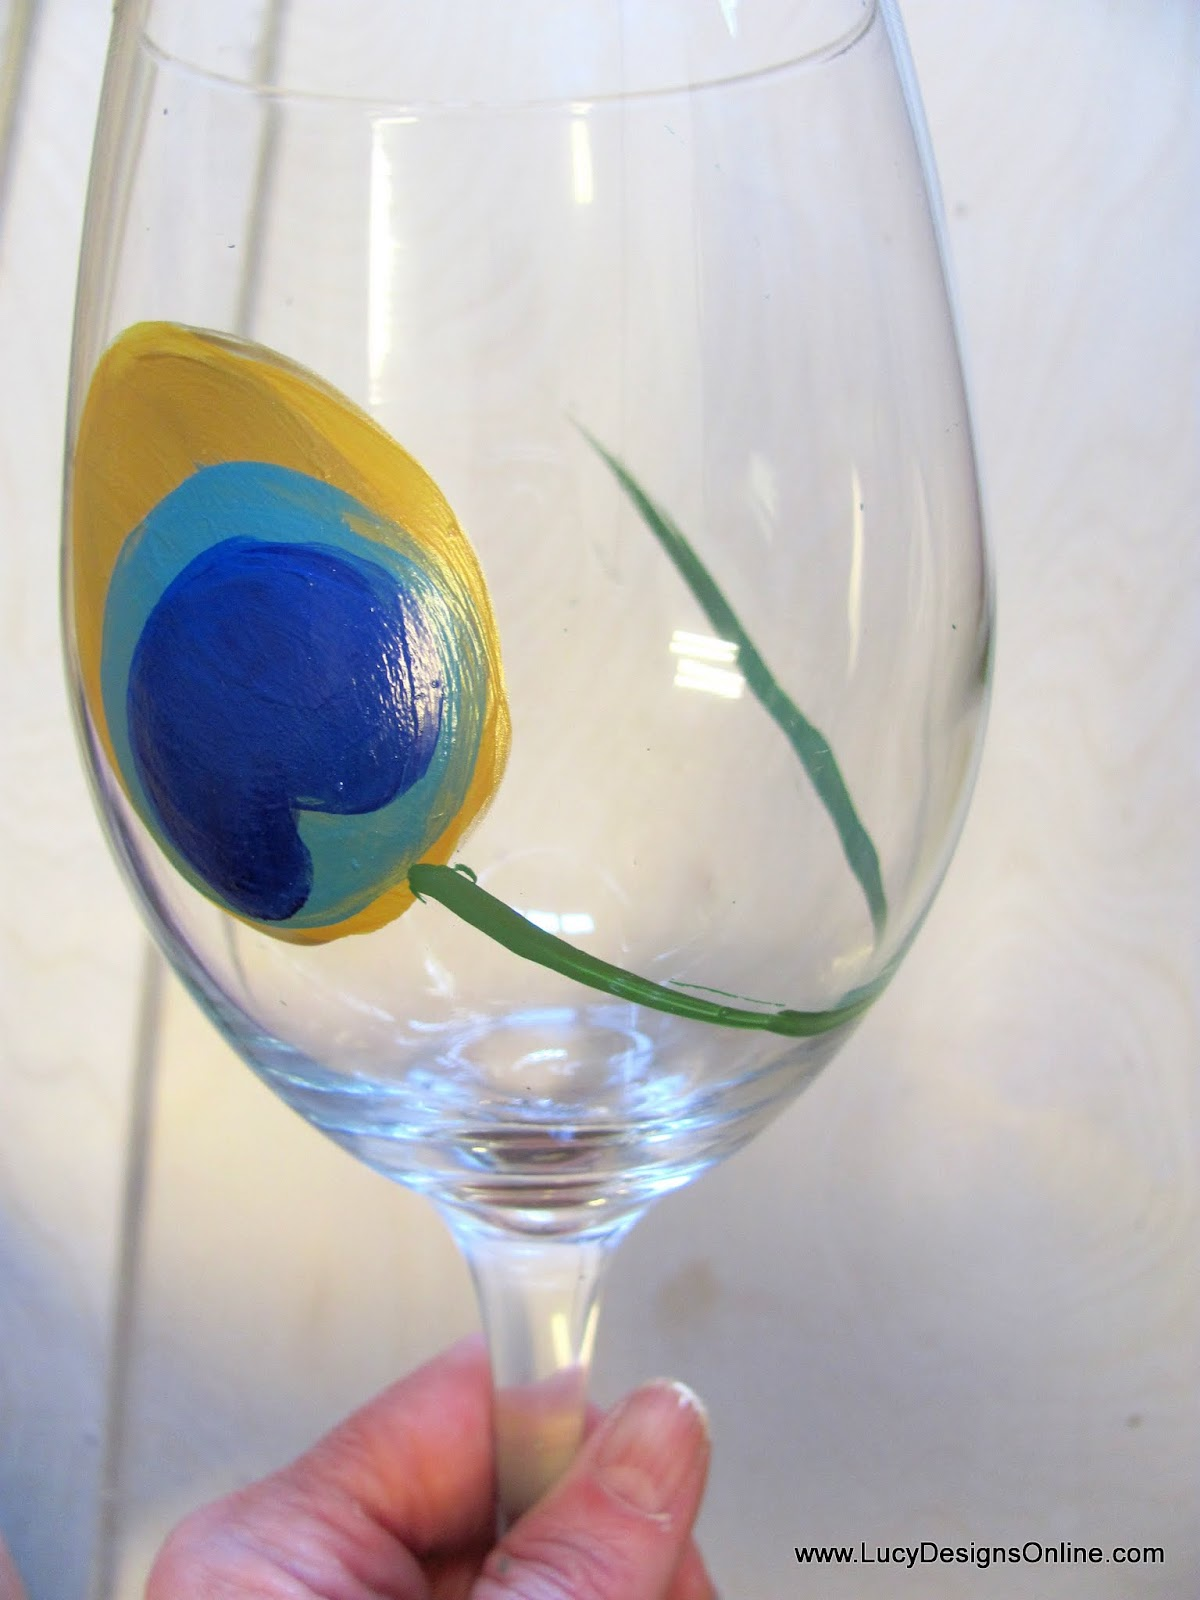 Diy hand painted wine glasses with peacock feather design for Diy painted wine glasses